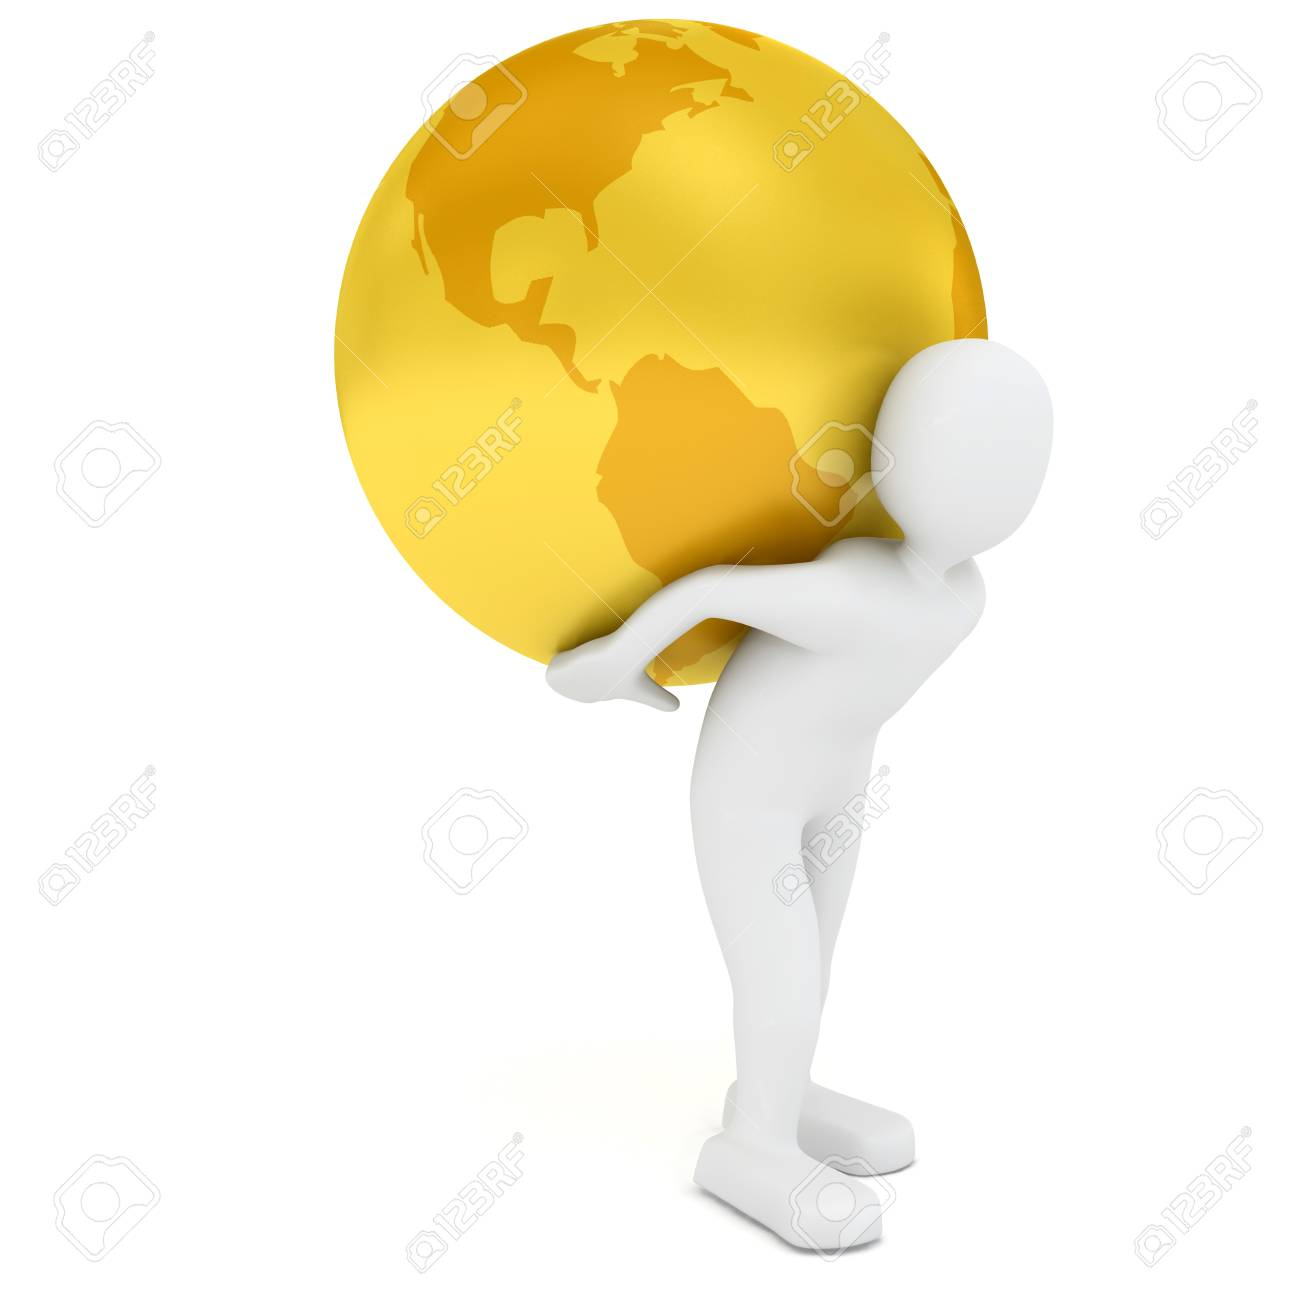 Globe over white background. 3d rendered image Stock Photo - 7623382